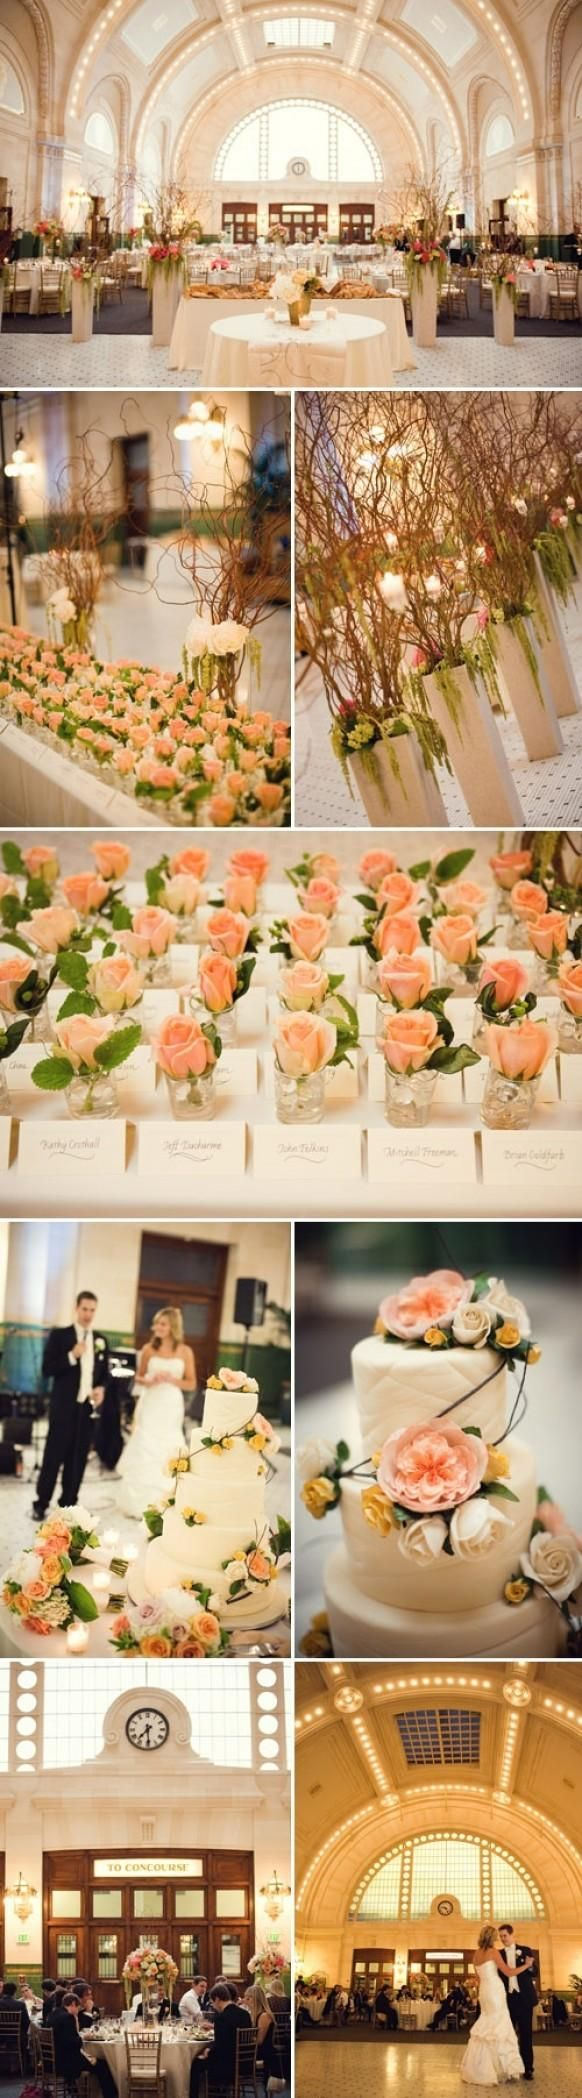 best wedding the peach state images on pinterest marriage